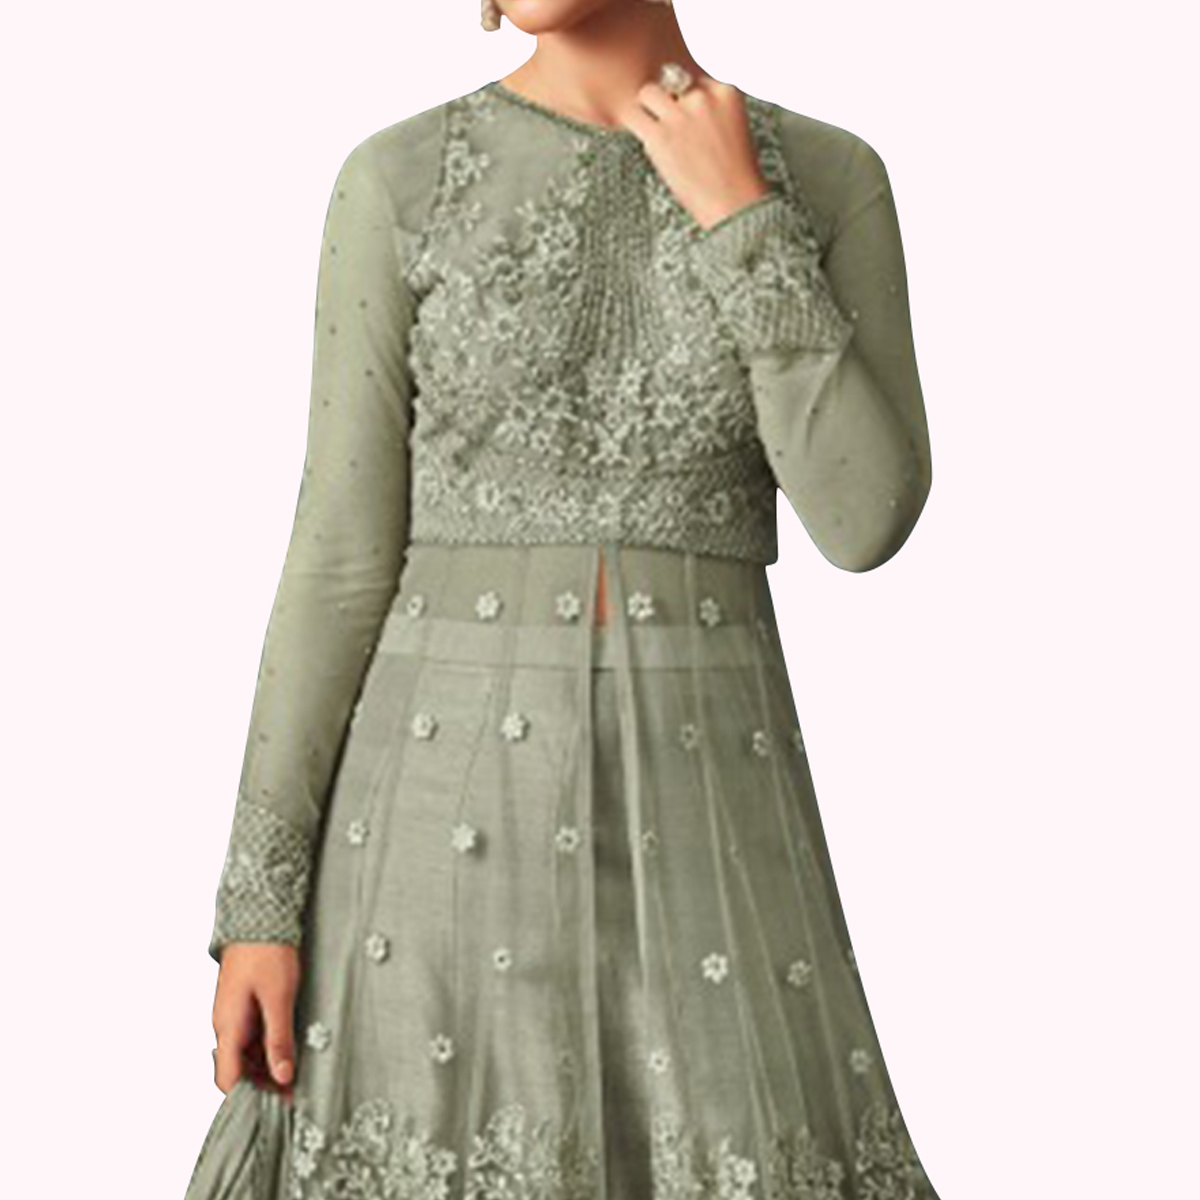 Groovy Pastel Green Colored Party Wear Embroidered Netted Lehenga Kameez